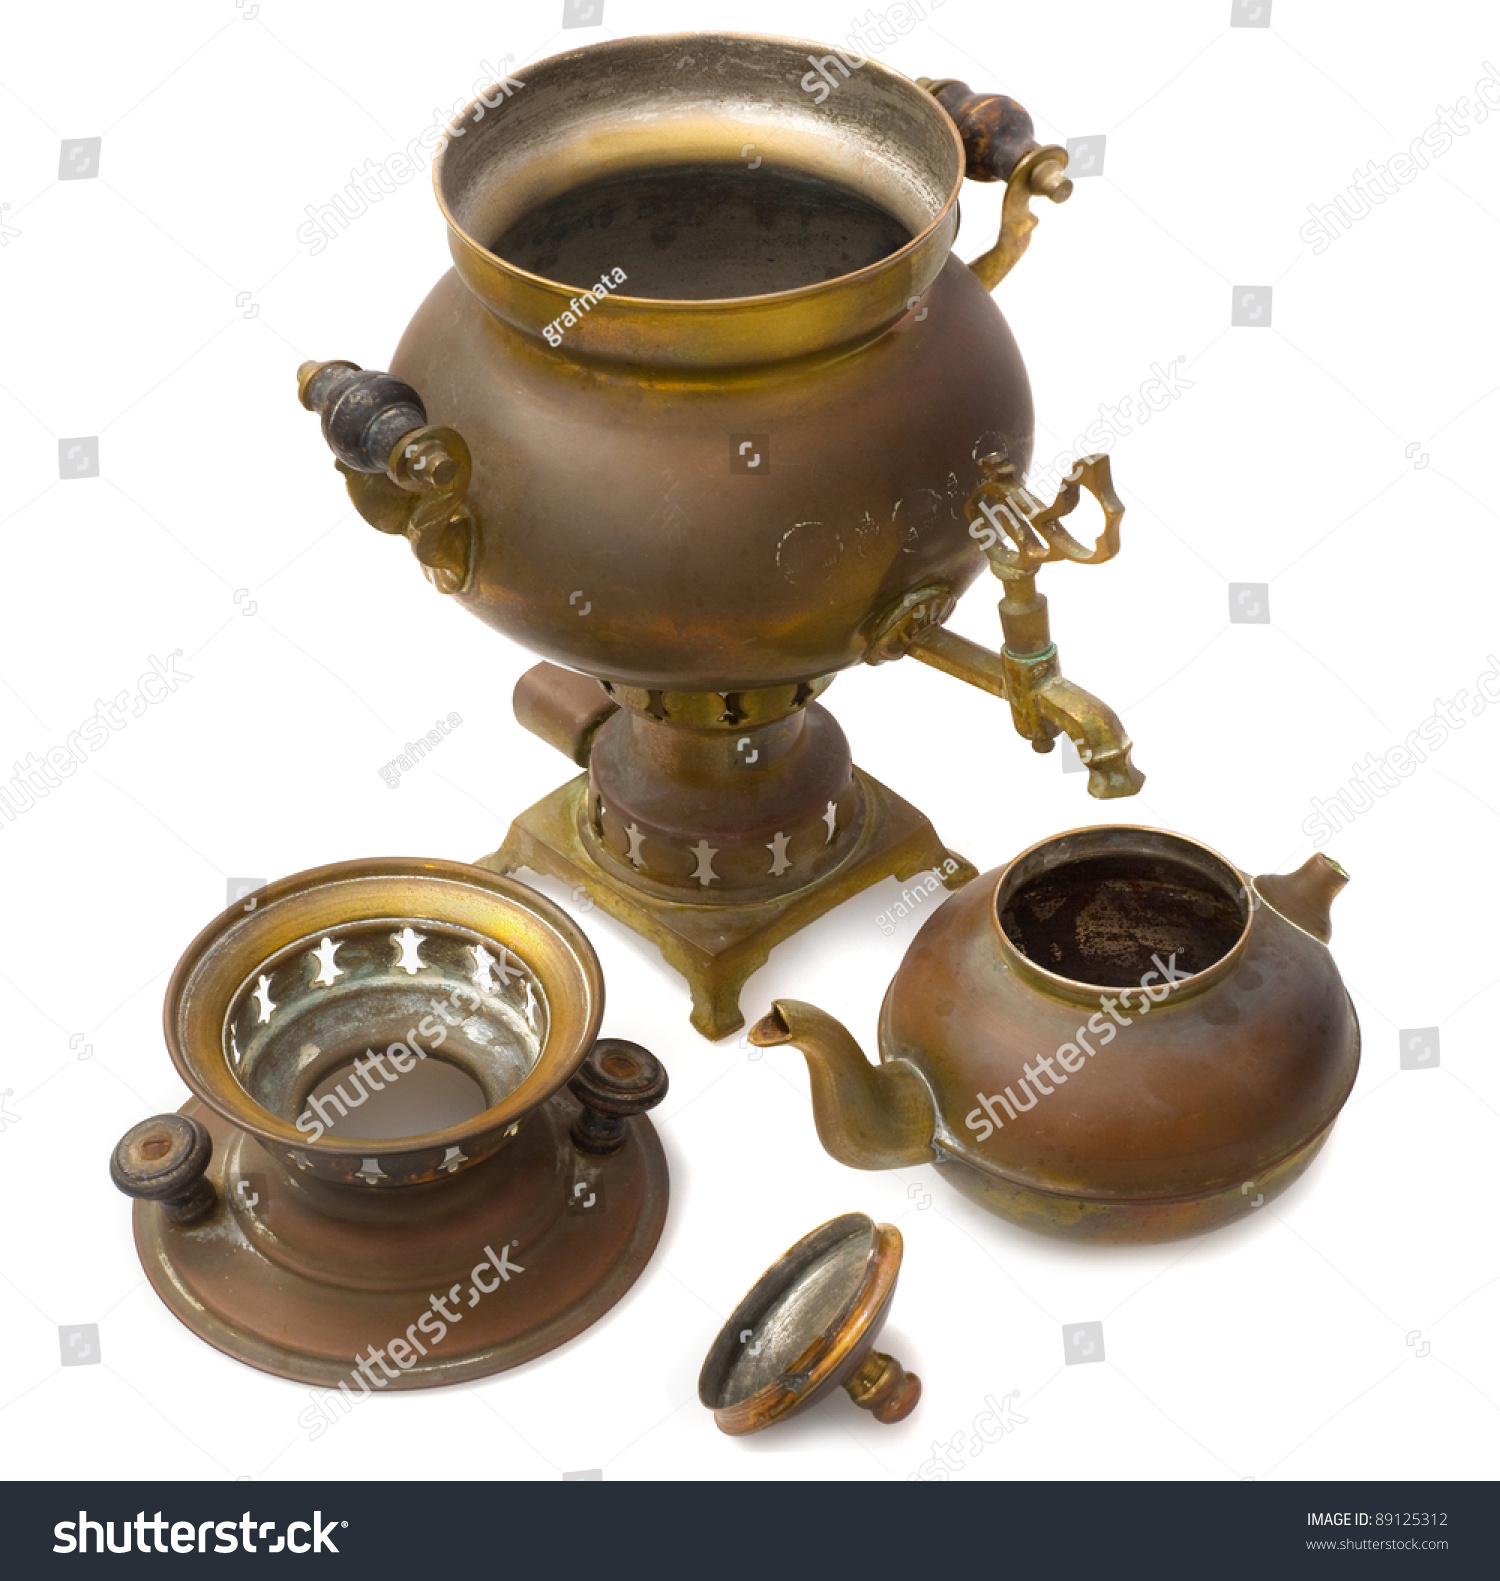 Samovar Old Russian Teapot Stock Photo 89125312 : Shutterstock